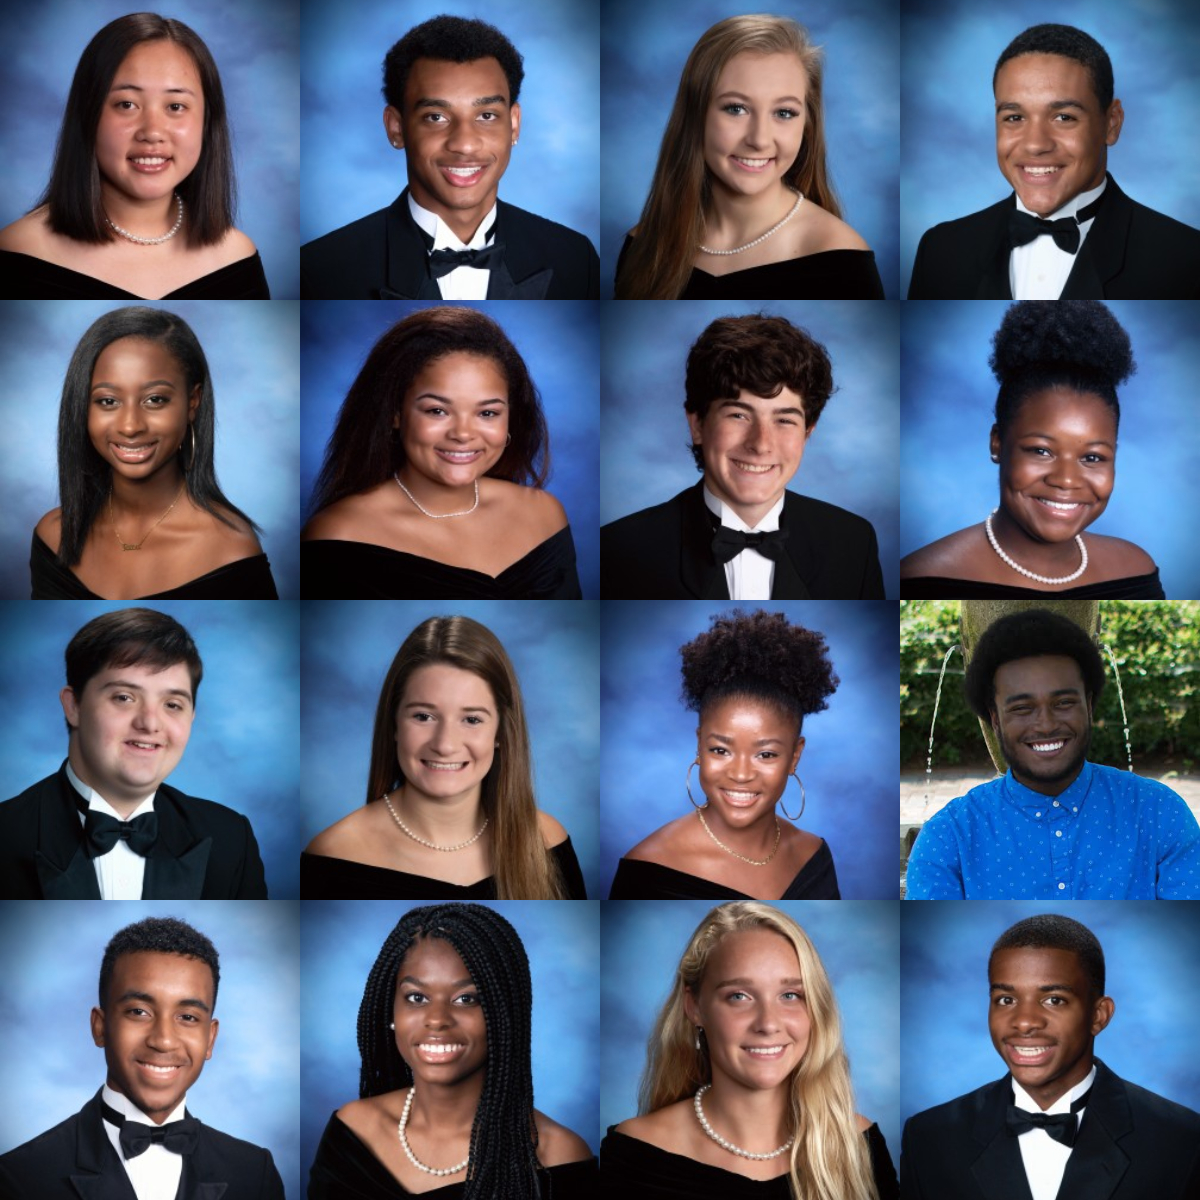 Pictured above, this year's selected Outstanding Seniors come from all parts of the school including the arts, athletics, and academic societies. Their hard work and dedication will be recognized at the WinterFest assembly on February 15.